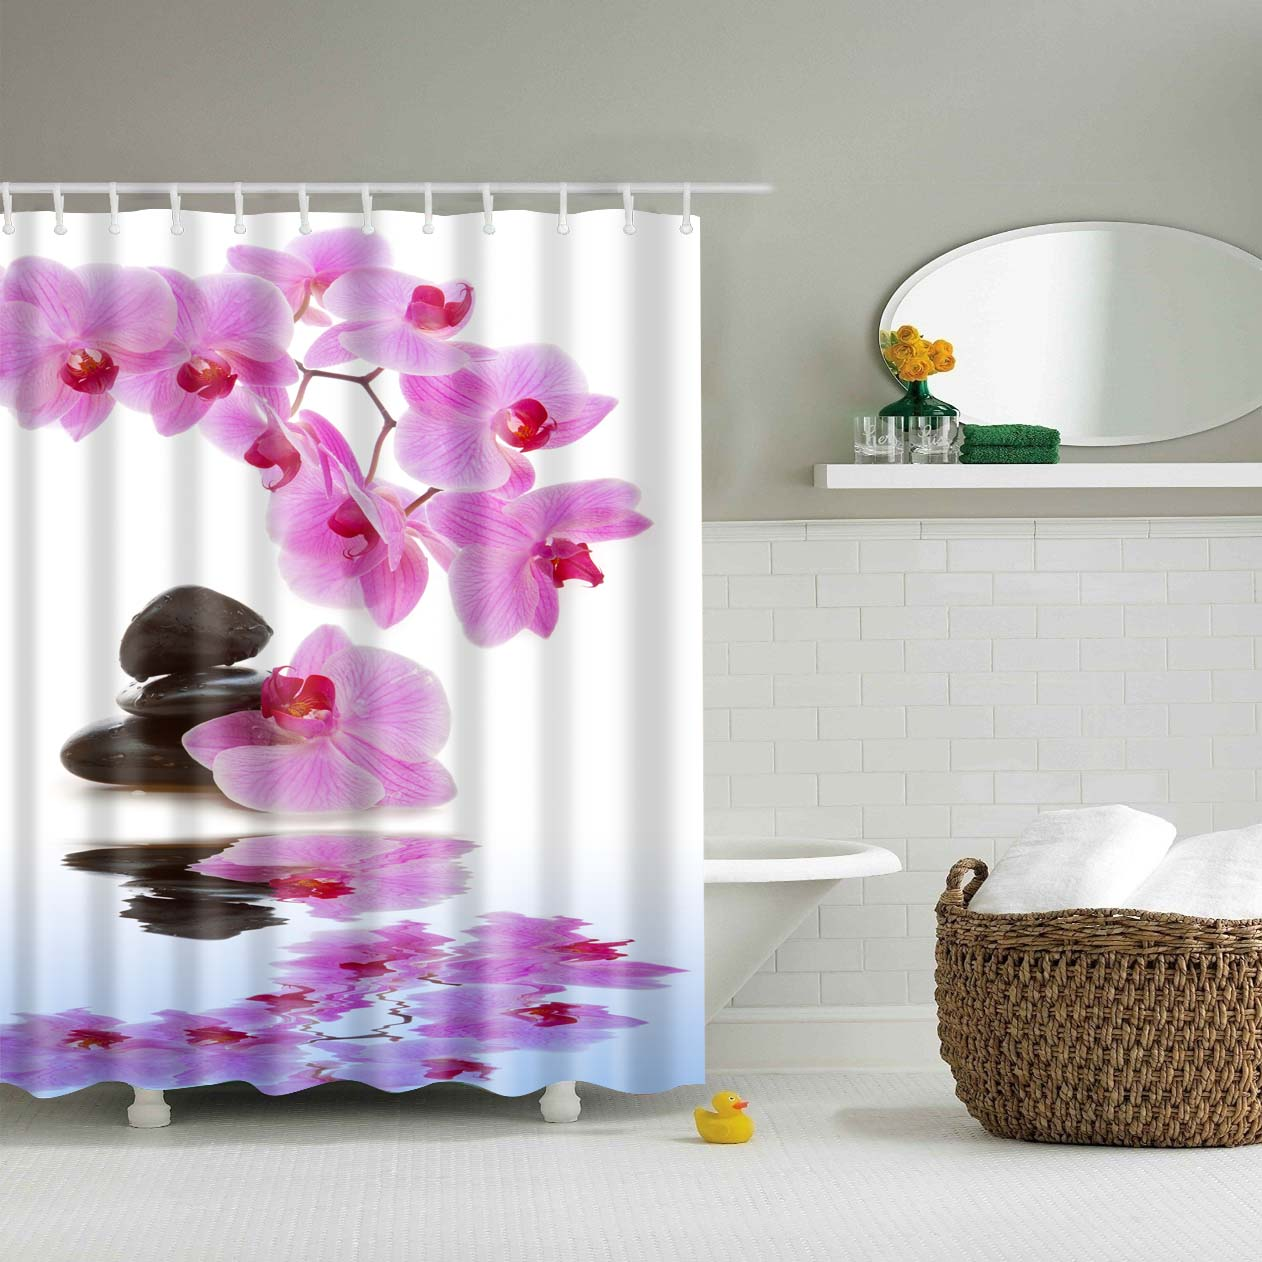 Orchids and Stones Pond Shower Curtain | GoJeek